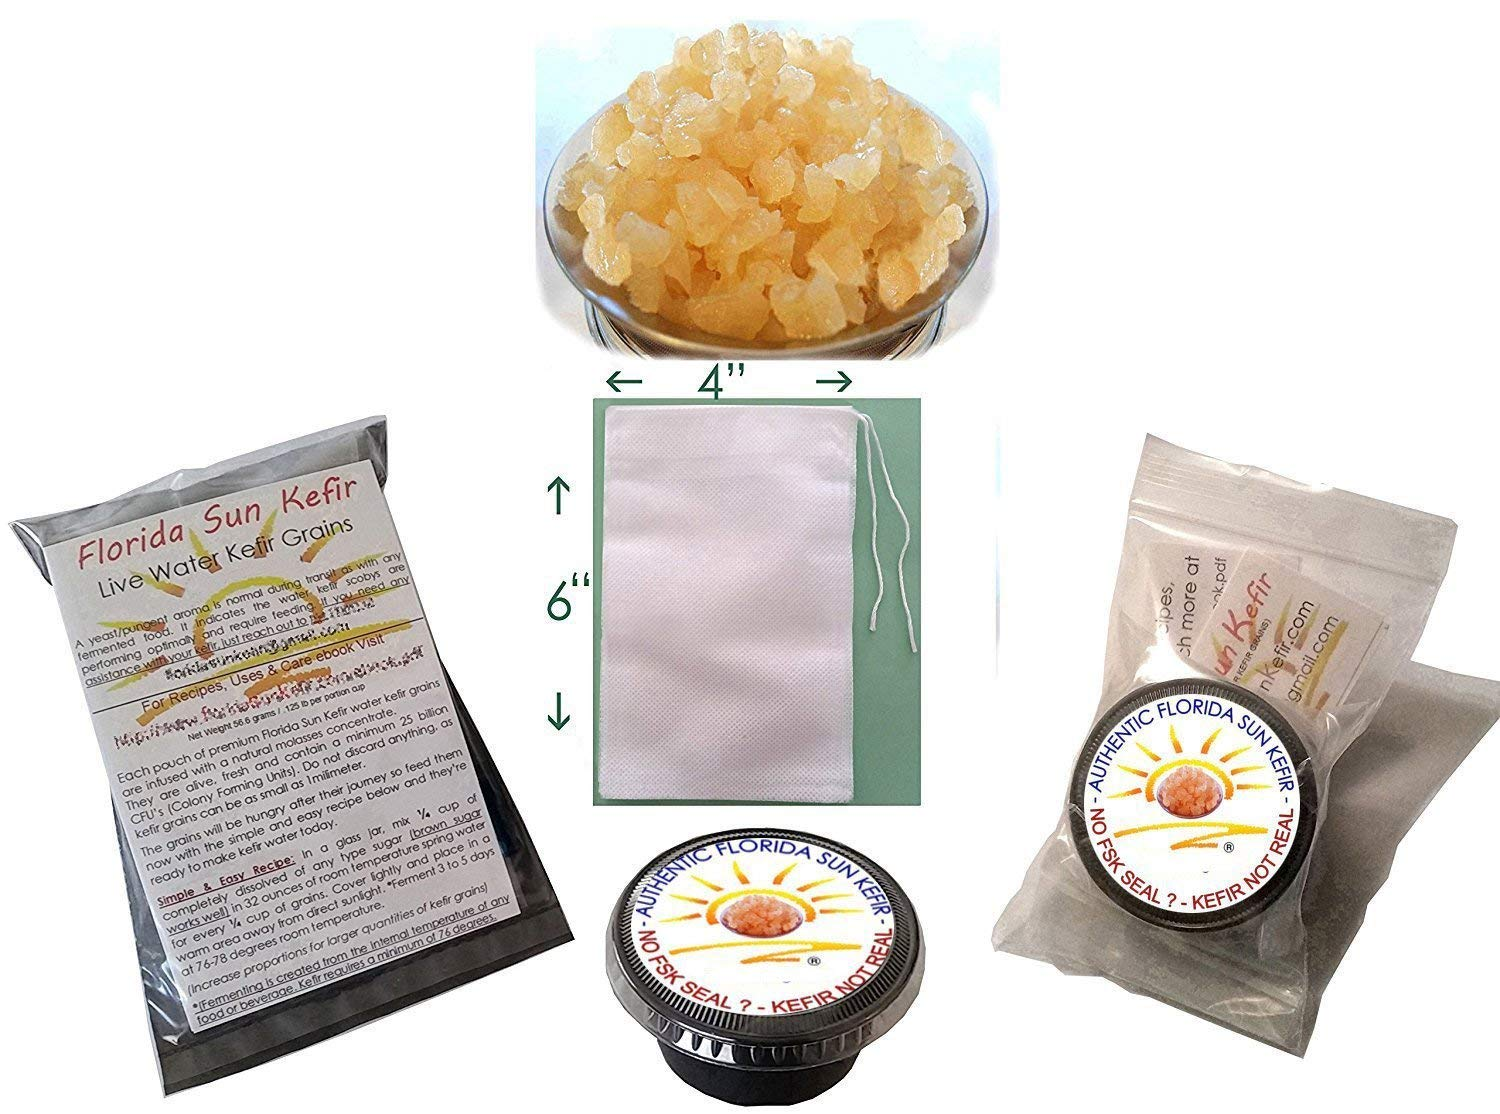 Live, Organic Water Kefir Grains and Detailed Instruction Manual (.pdf)